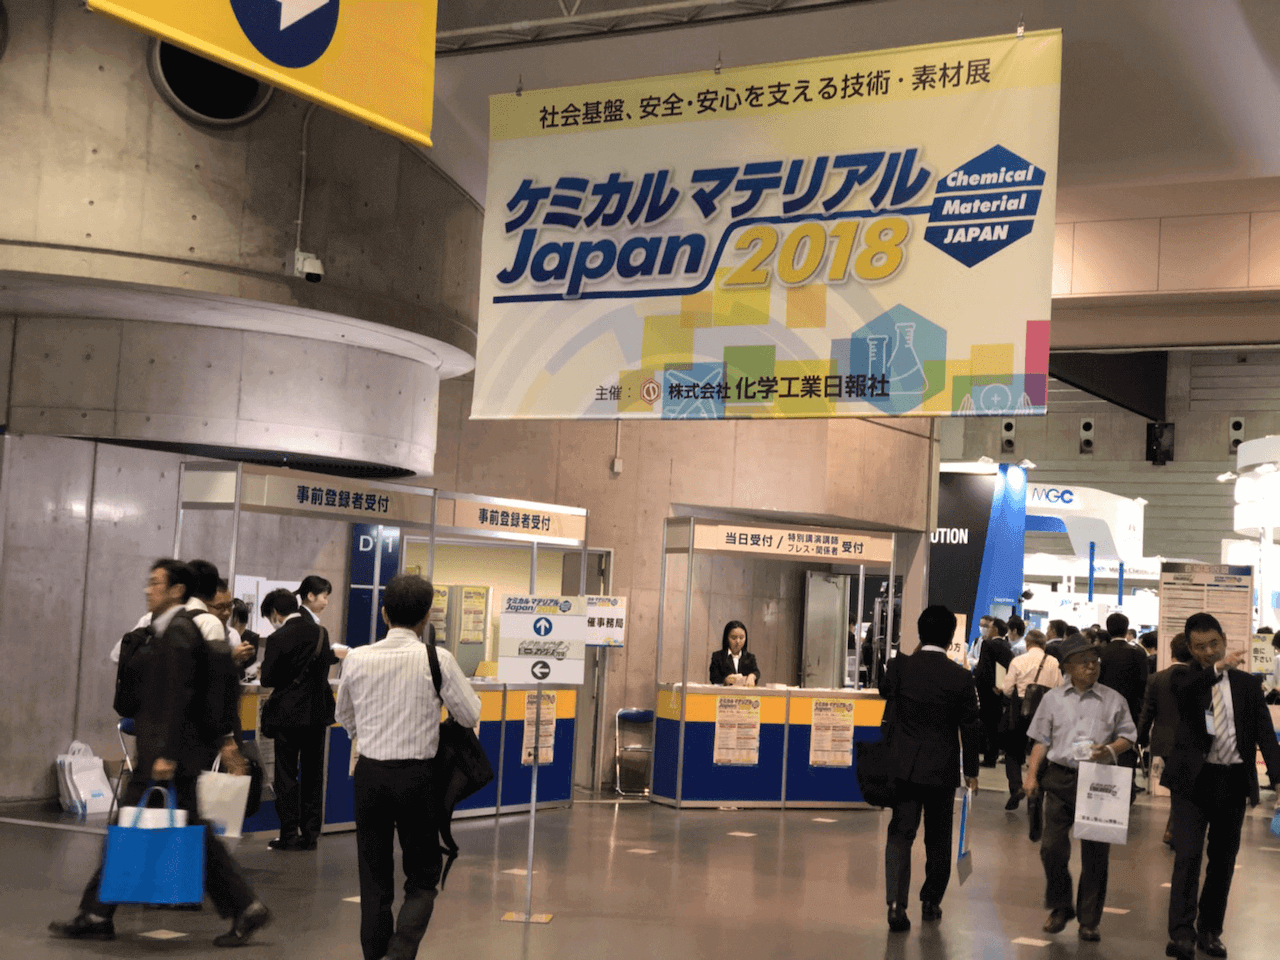 We will exhibit at Chemical Materials Japan 2019 Advanced Chemical Materials and Materials Exhibition